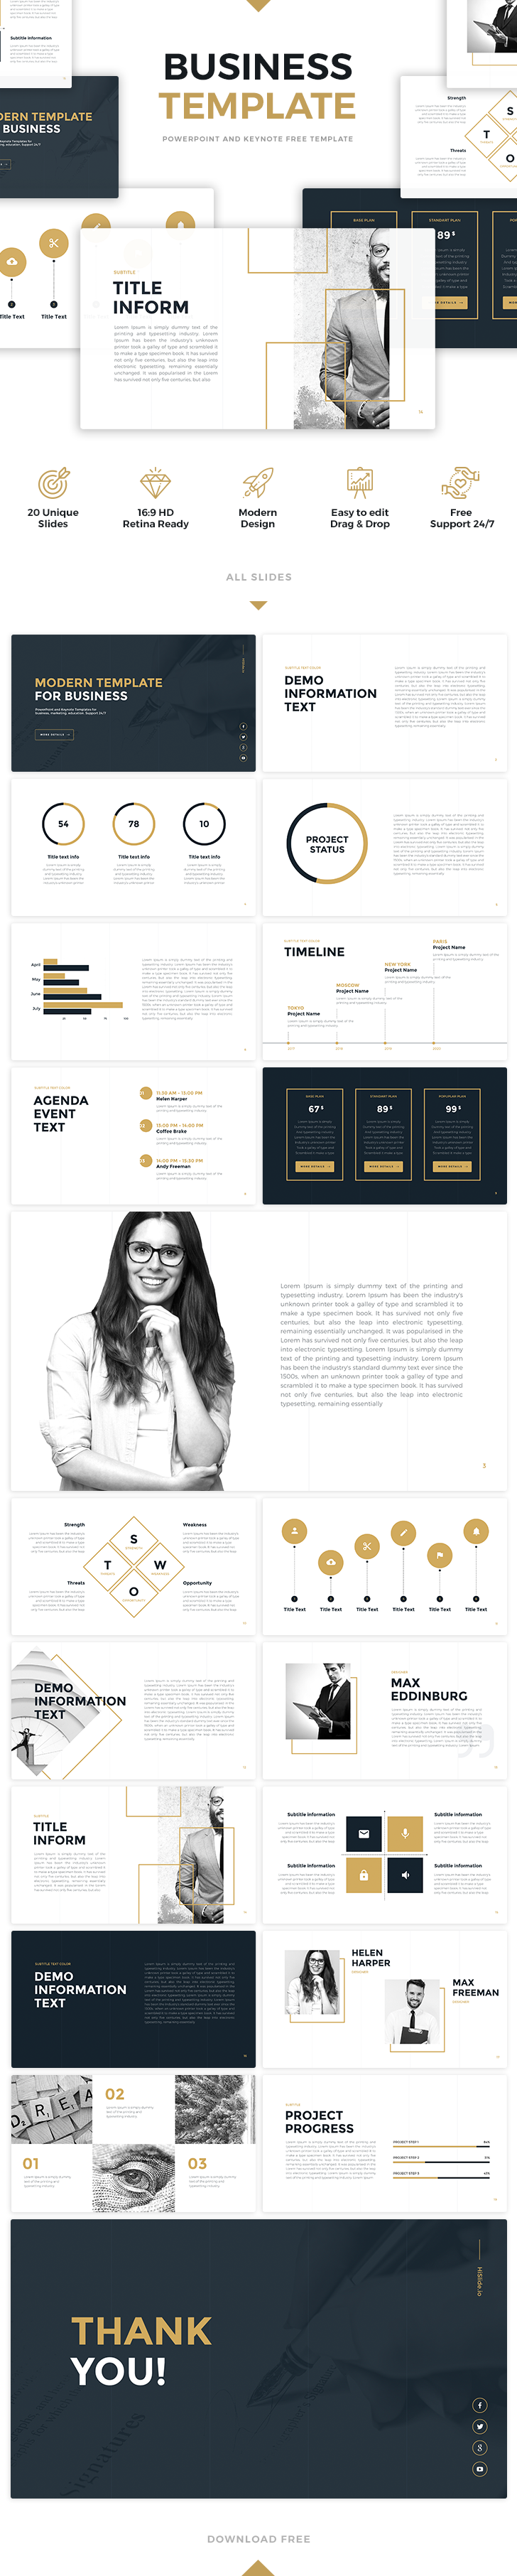 Free download artbusiness template for powerpoint or keynotes free download artbusiness template for powerpoint or keynotes 20 unique slides toneelgroepblik Choice Image